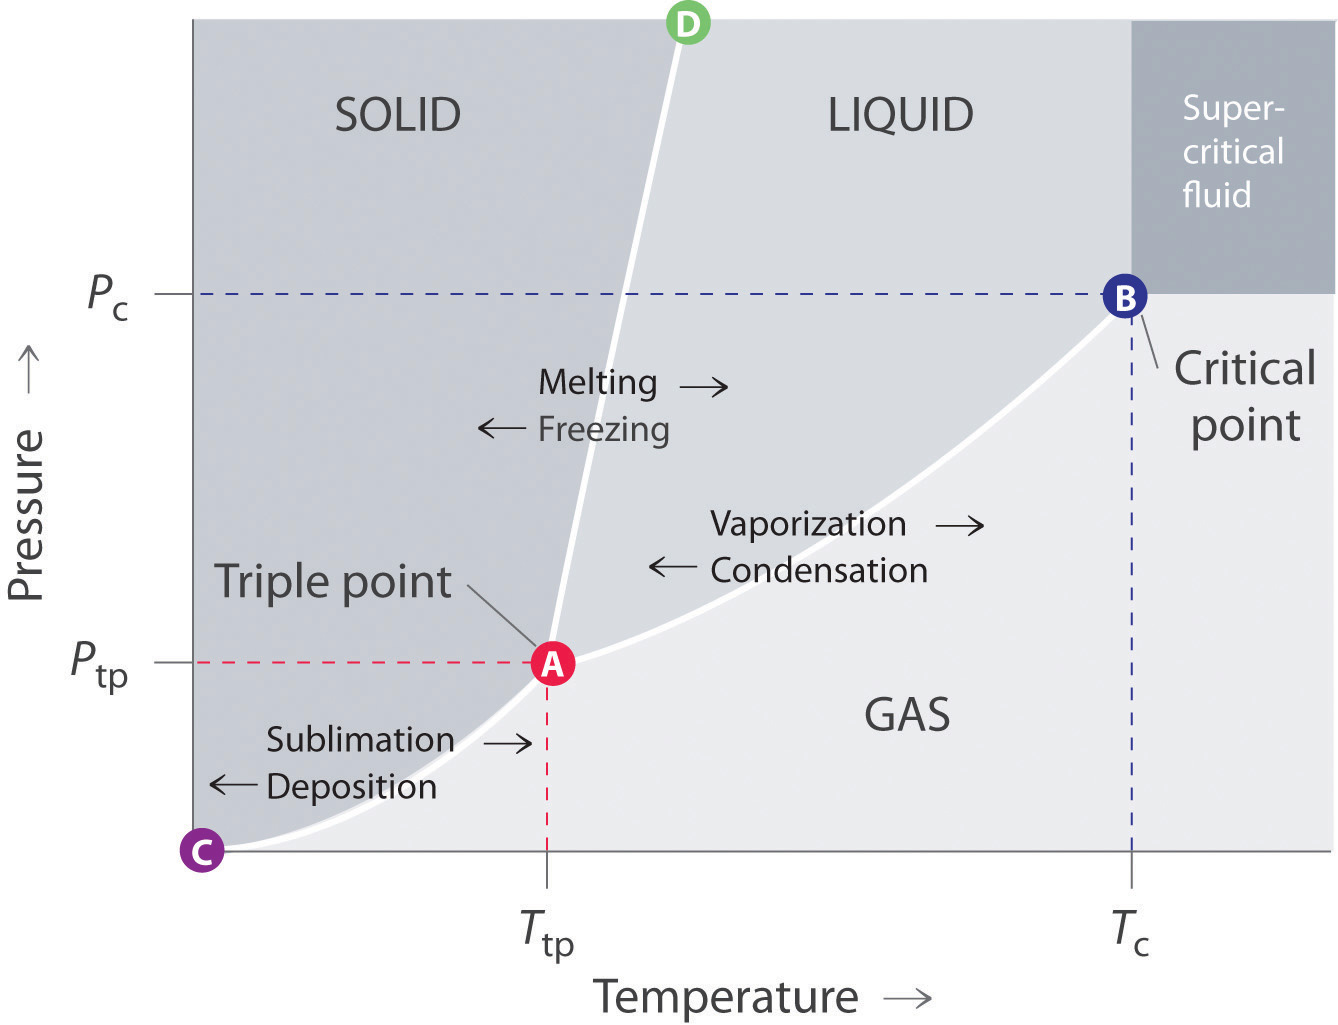 General chemistry principles patterns and applications 10 figure 1122 a typical phase diagram for a substance that exhibits three phasessolid liquid and gasand a supercritical region pooptronica